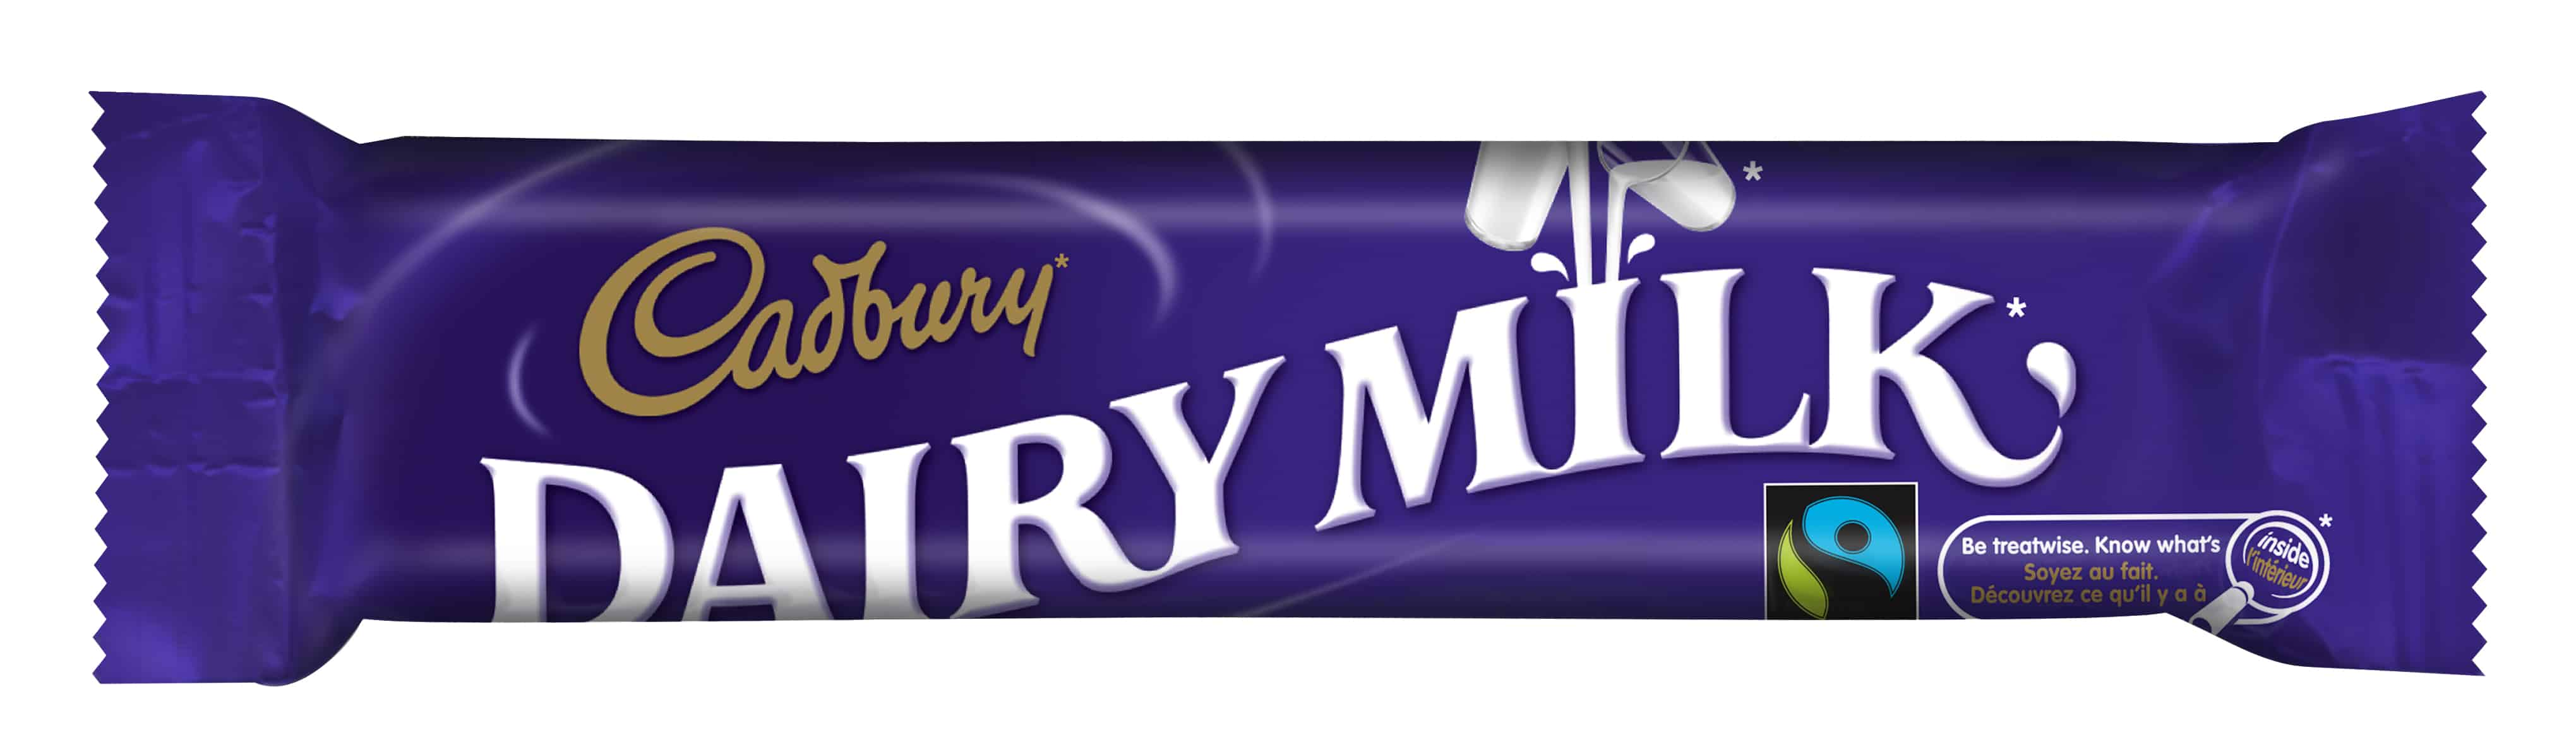 Cadbury Diary Milk Bars Are Fair Trade Certified!